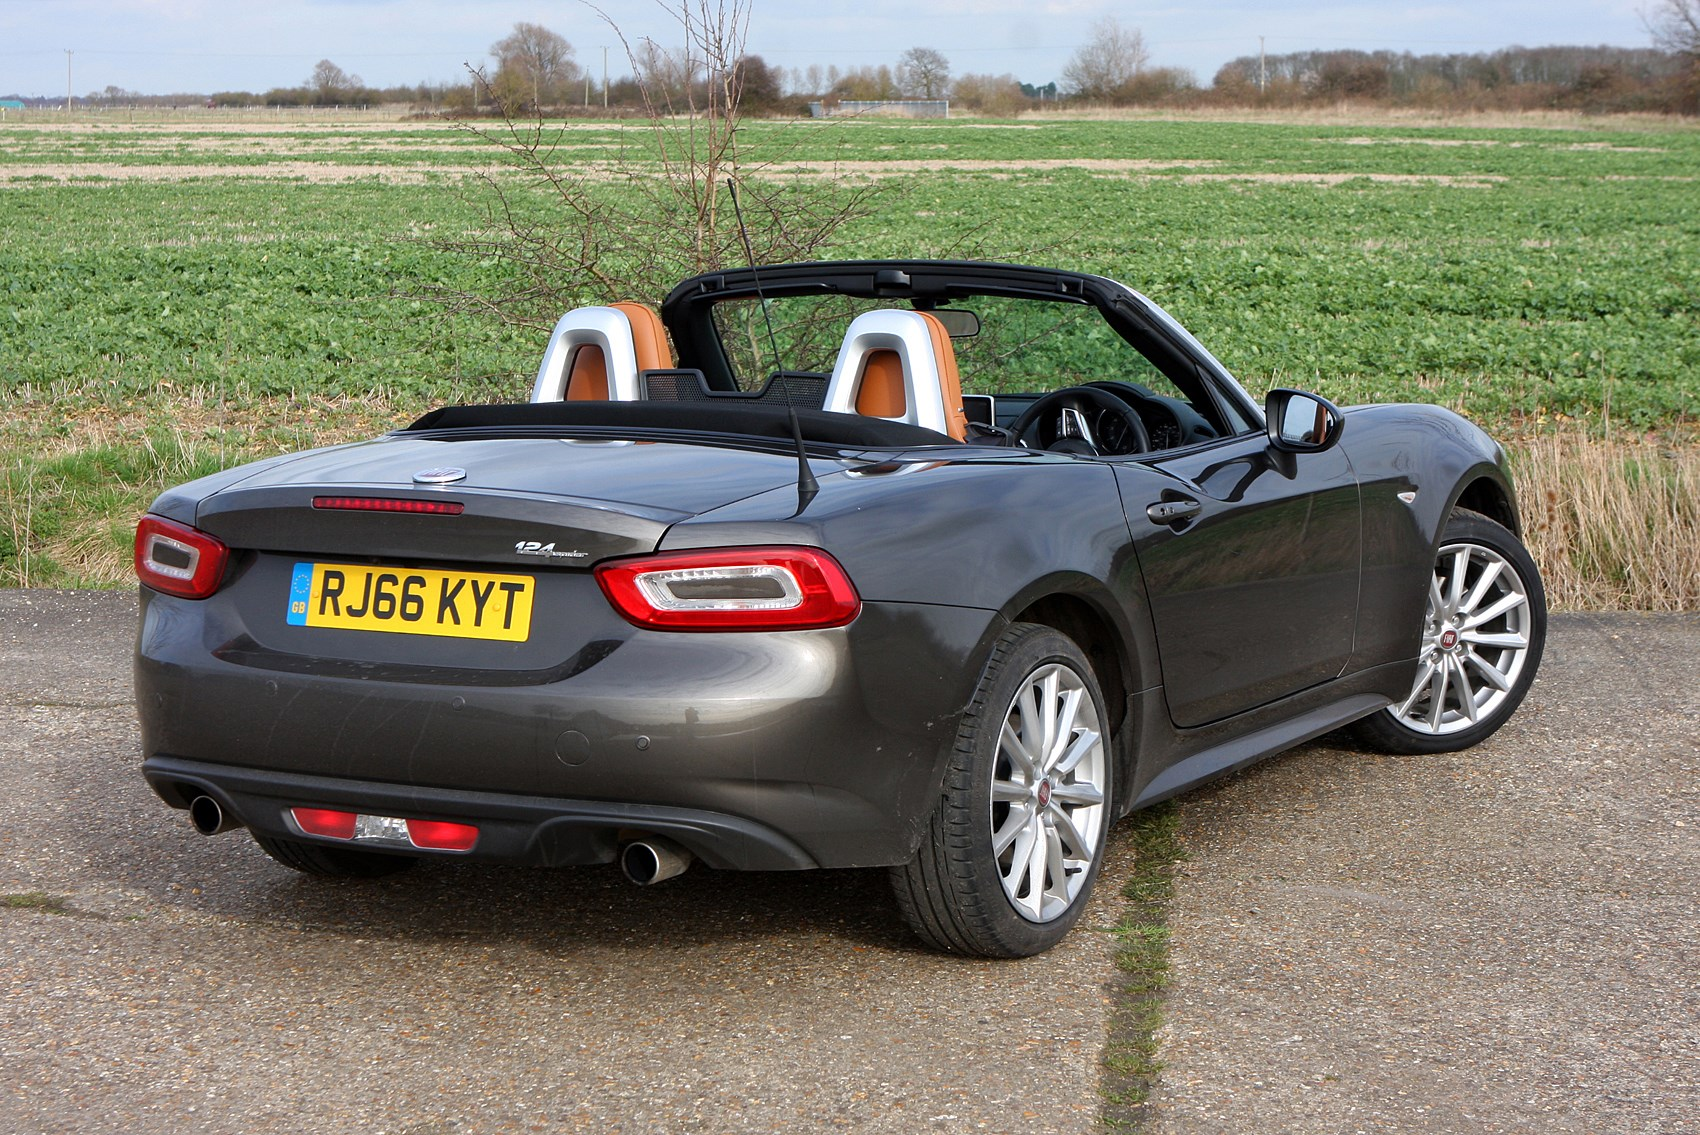 fiat 124 spider convertible review 2016 parkers. Black Bedroom Furniture Sets. Home Design Ideas